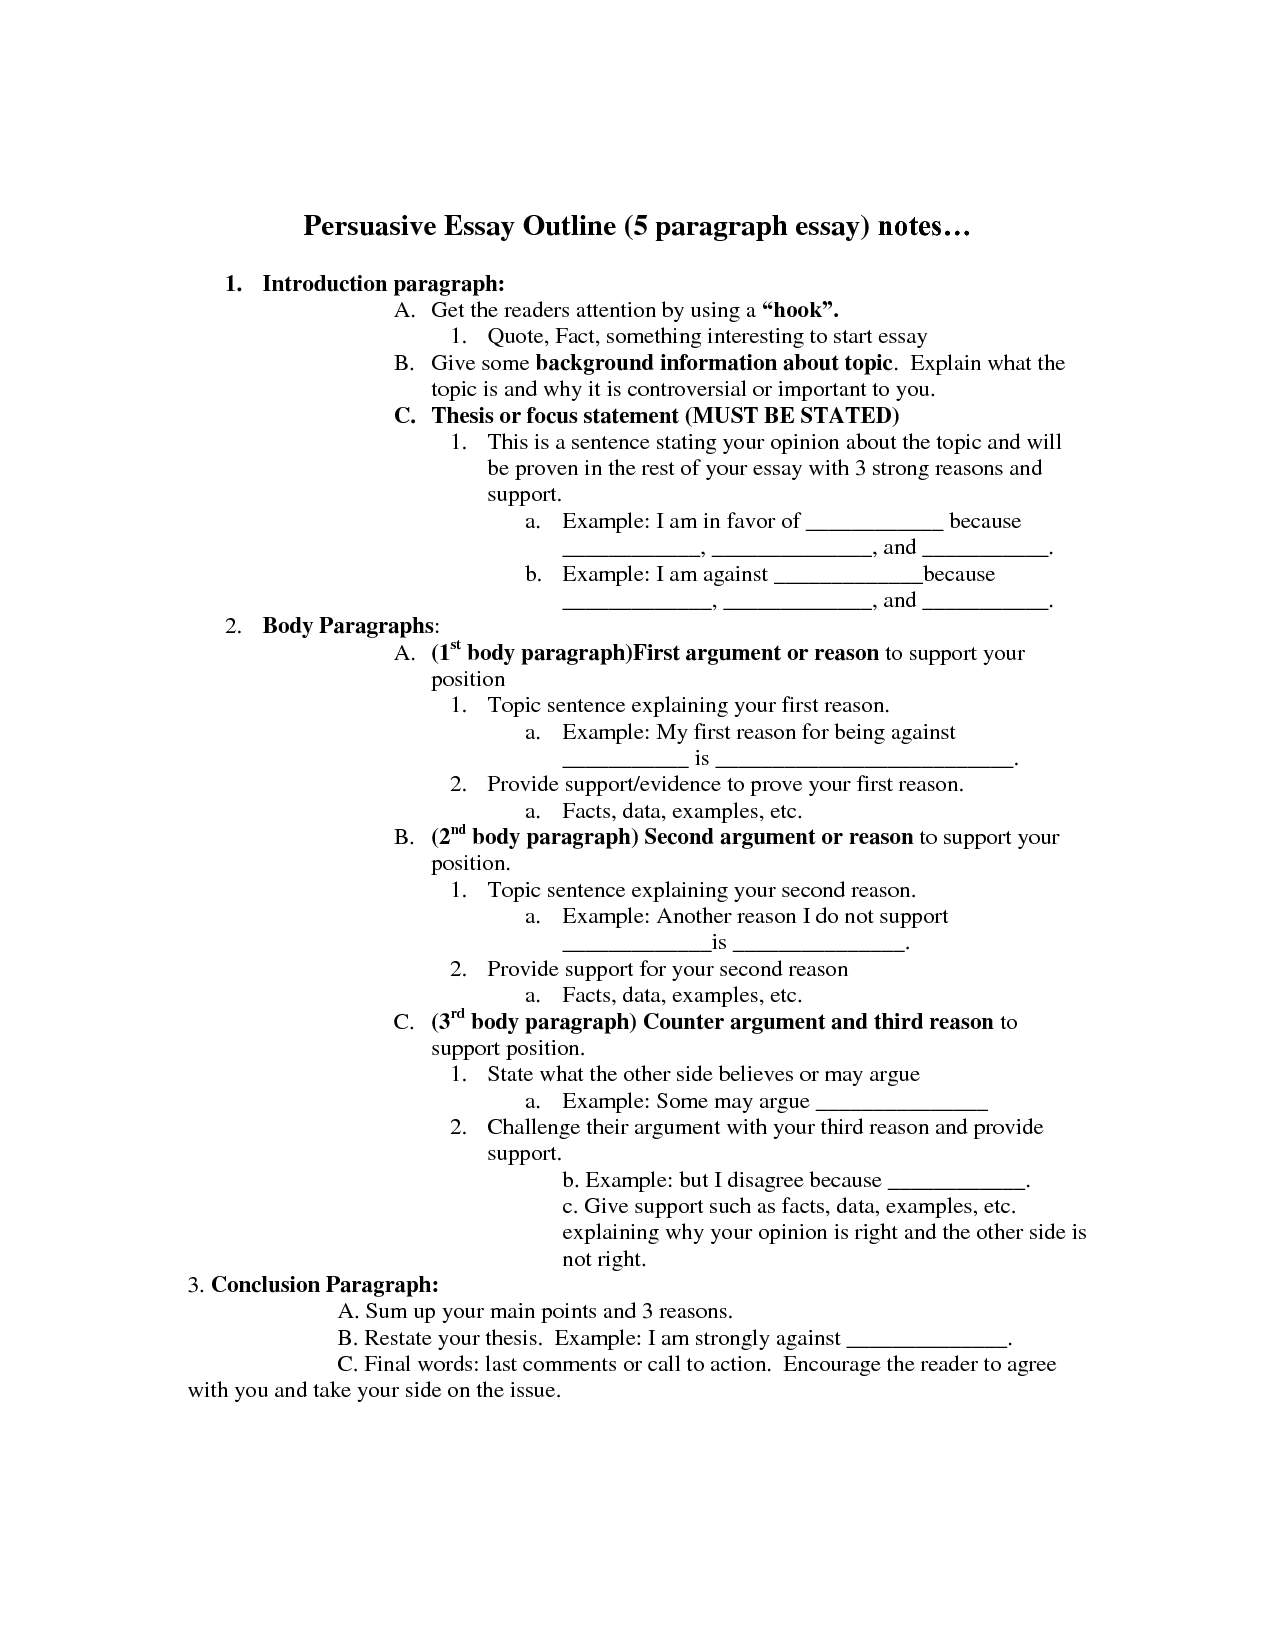 006 Persuasive Essay Outline Unbelievable Format Middle School Template High Pdf Full